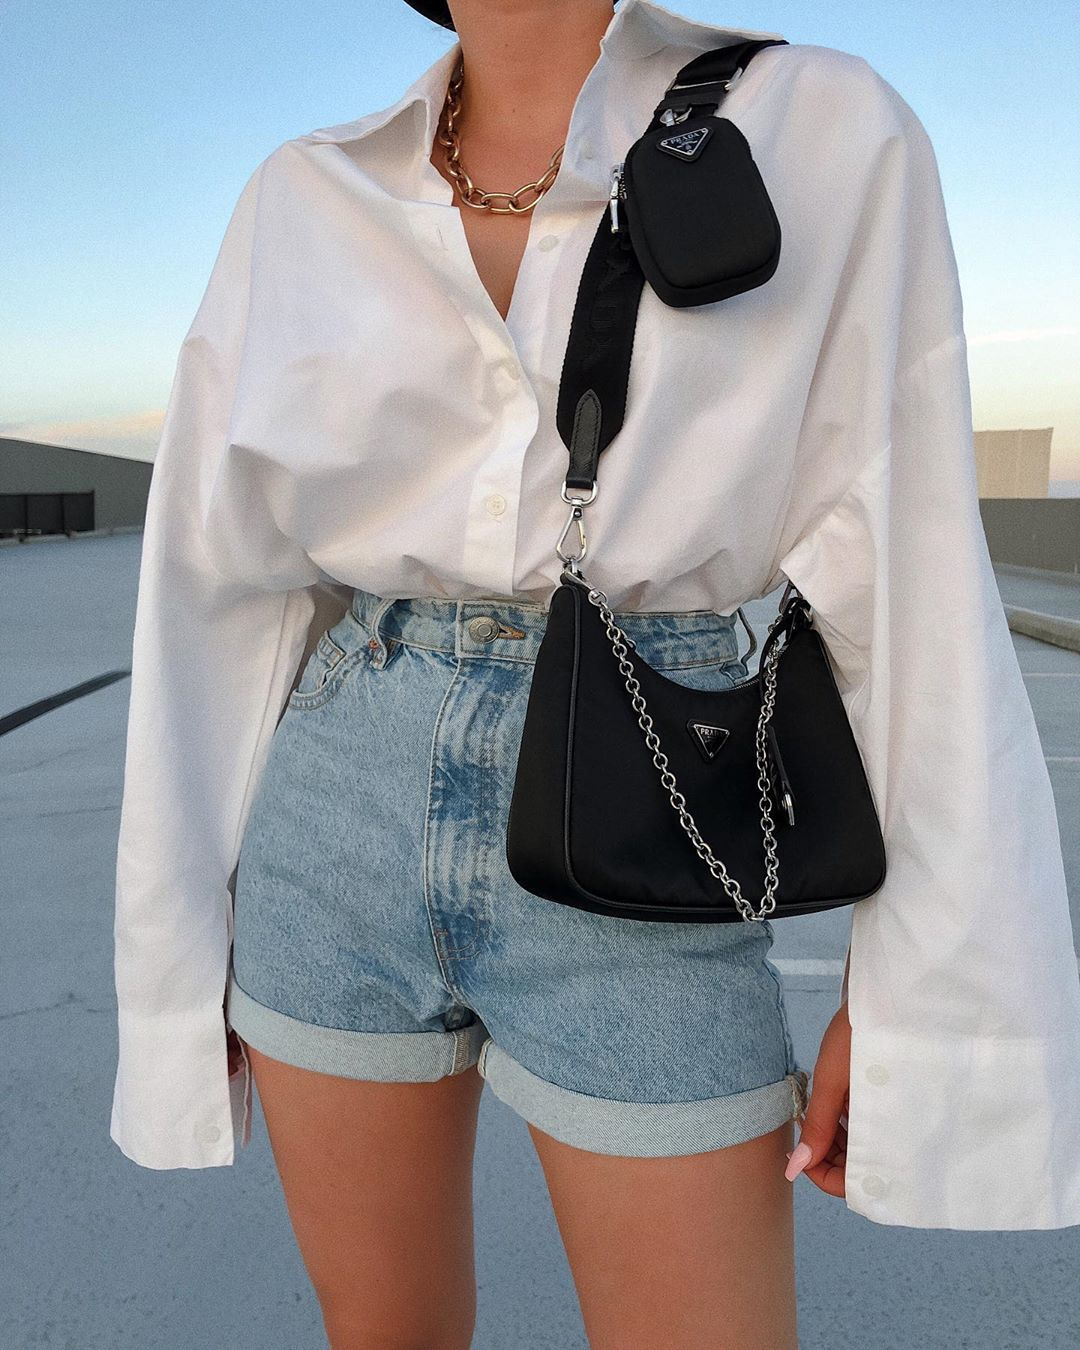 90s Bags Outfit